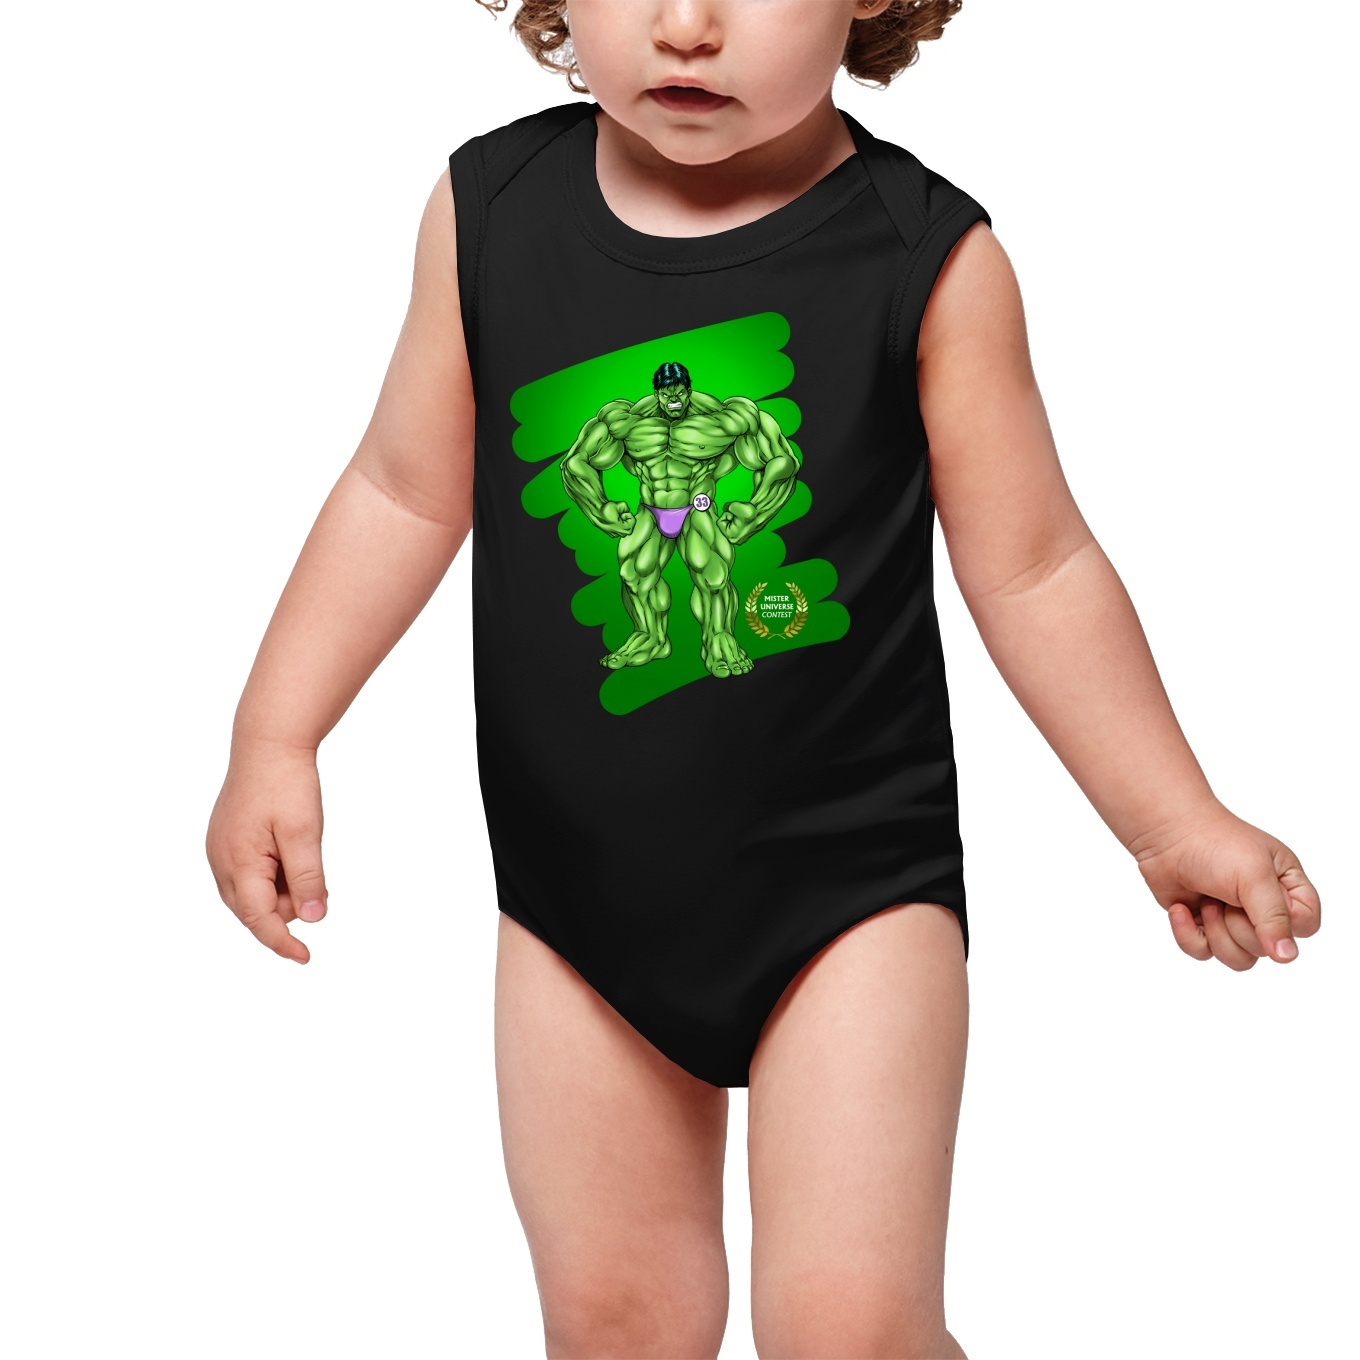 Sleeveless Baby Bodysuits Manga Parodies